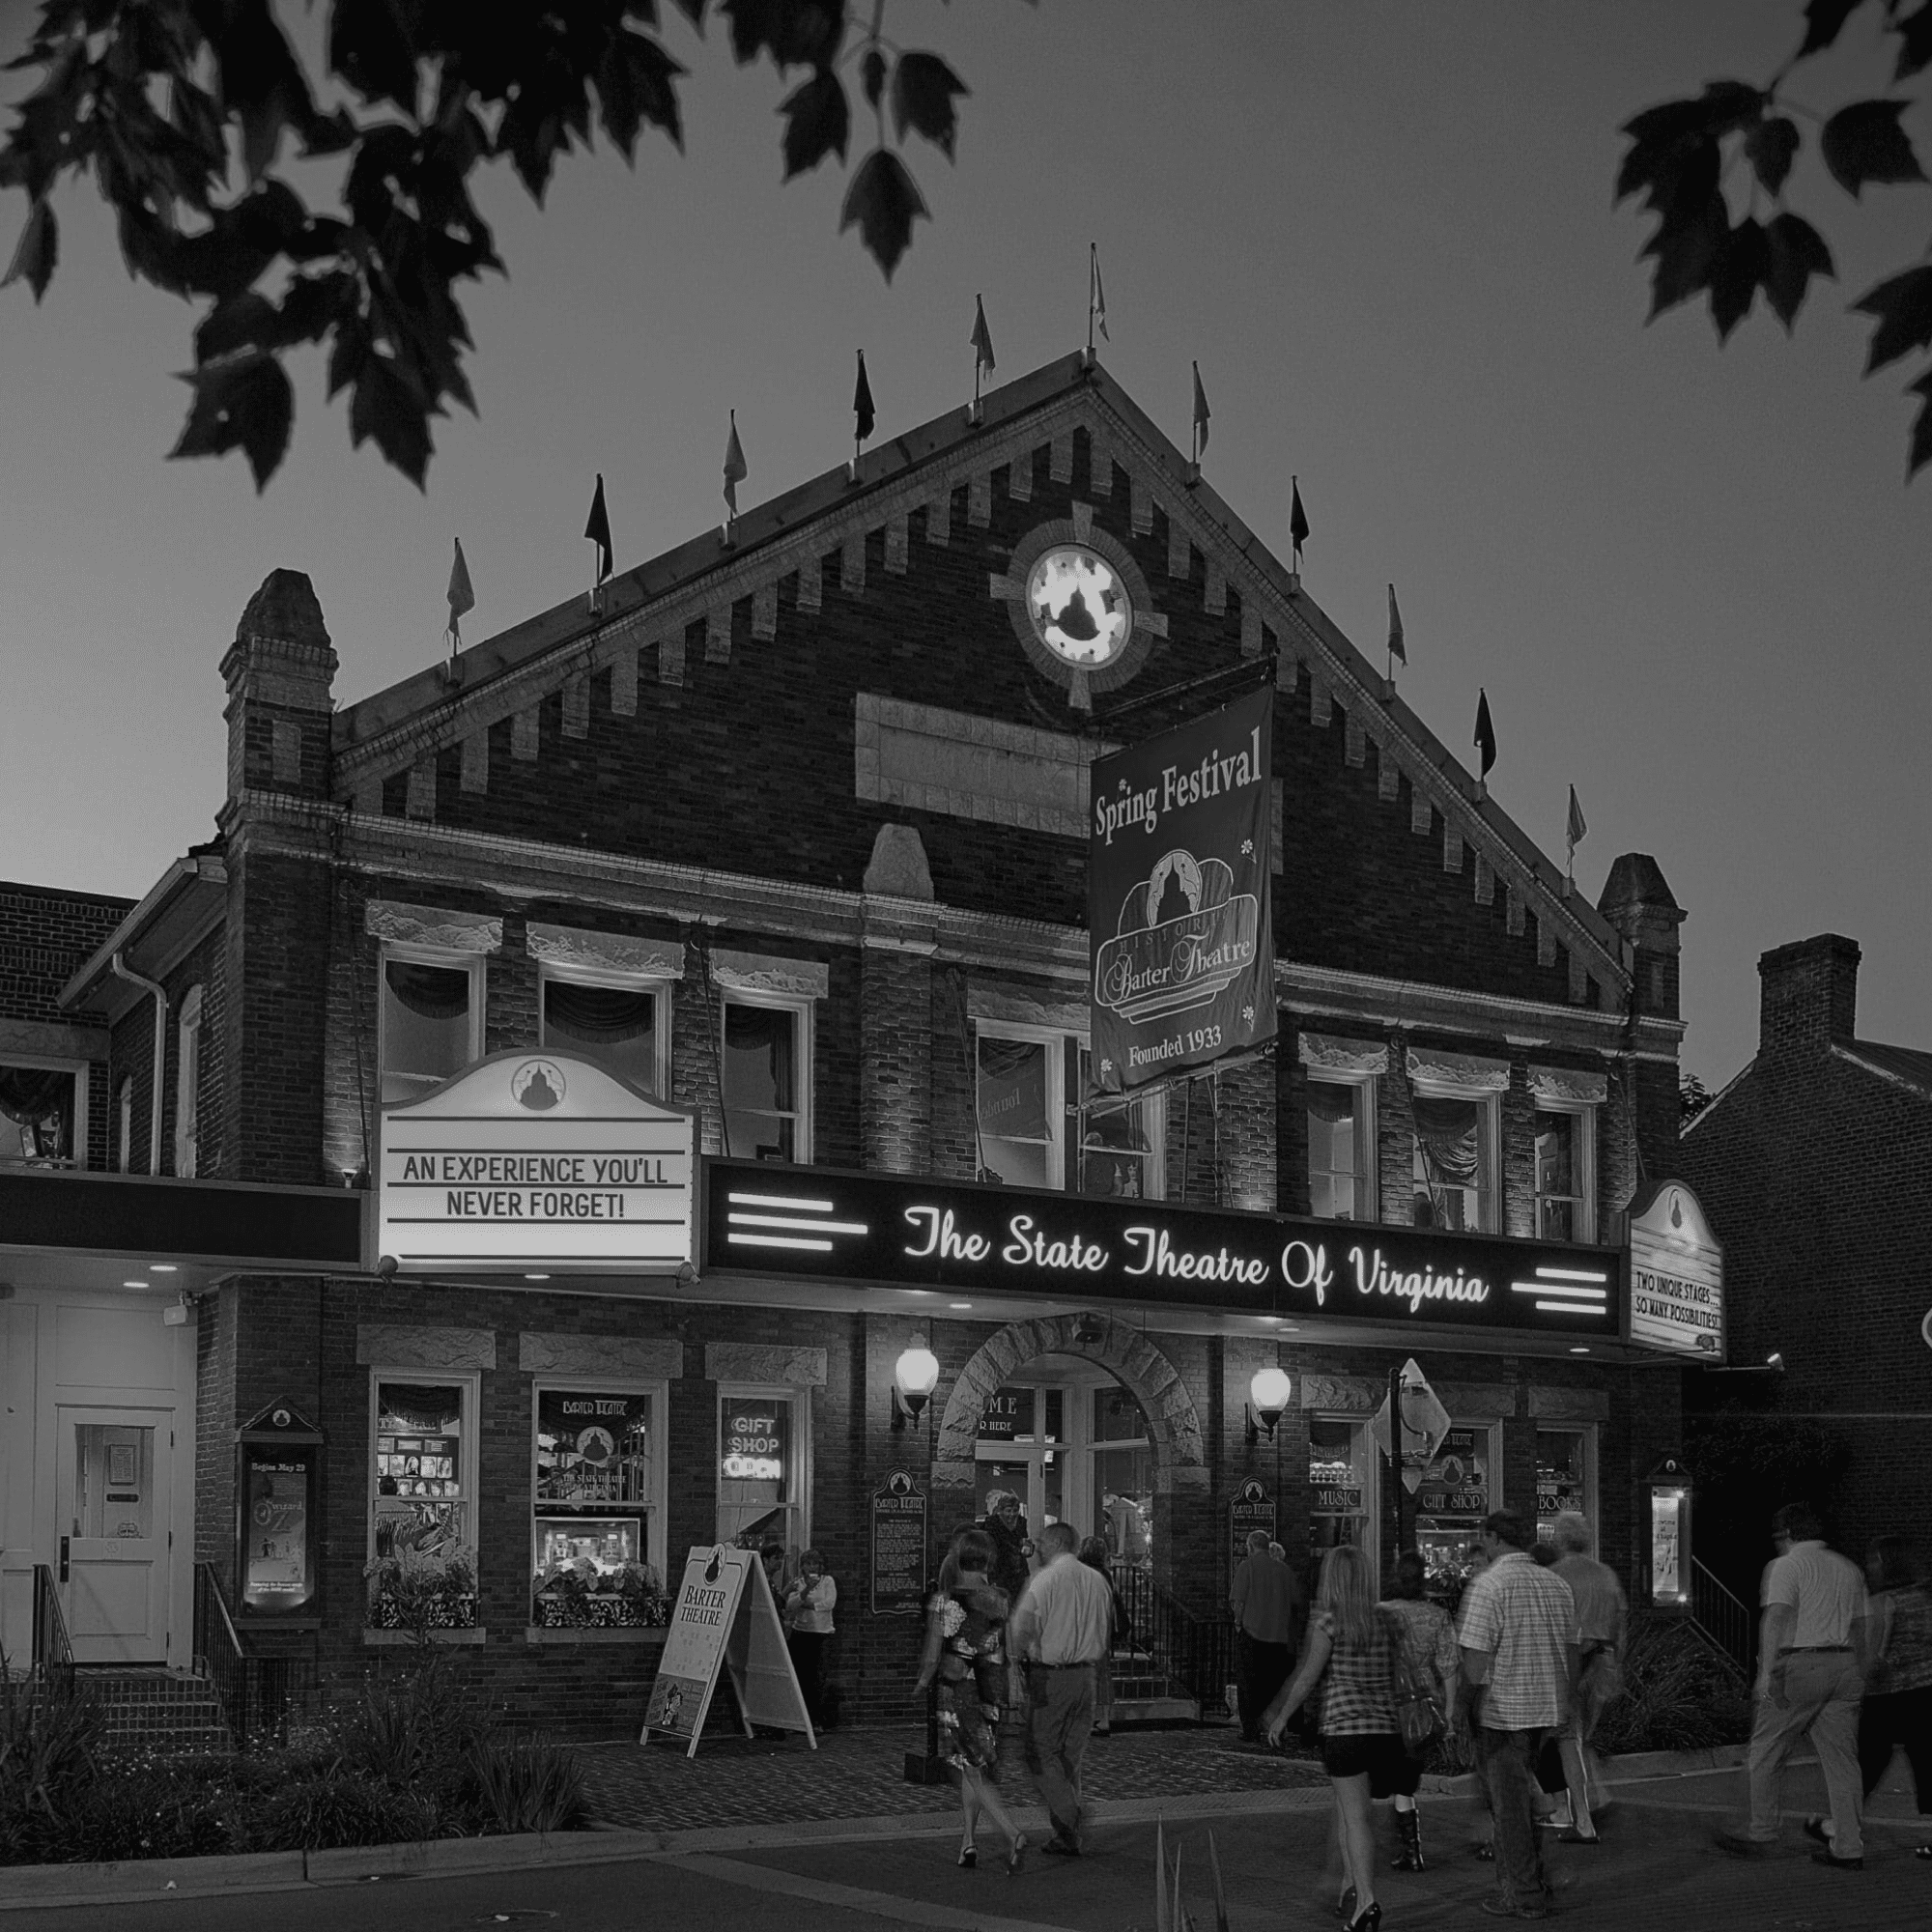 Barter Theatre at Night - Black and White